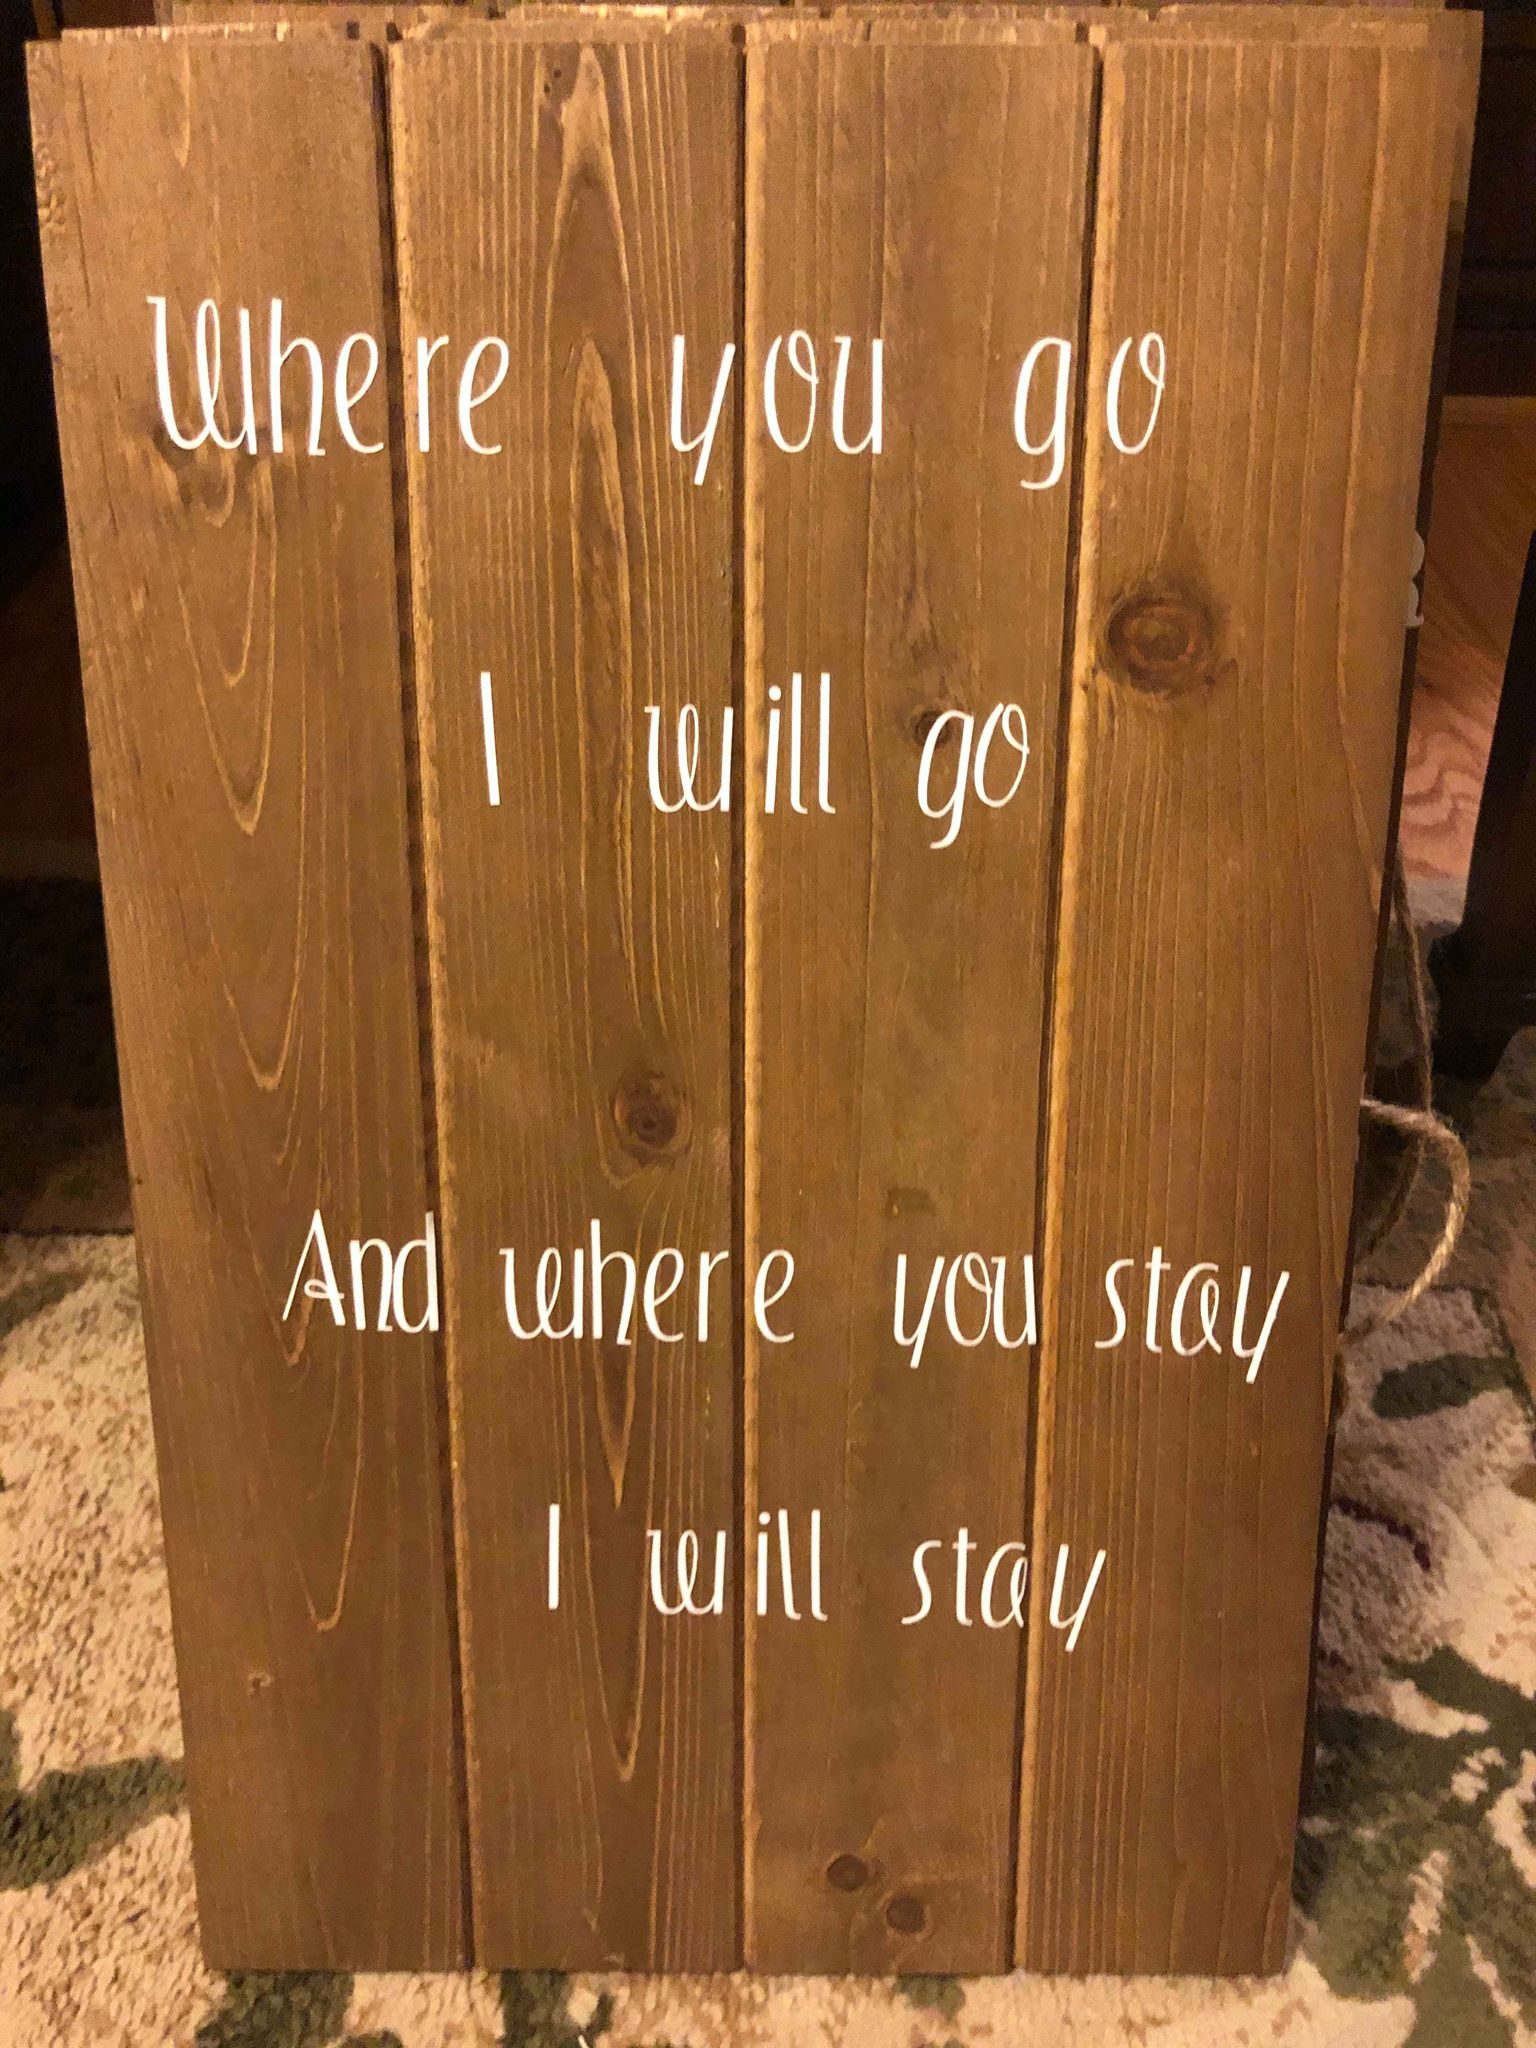 Where you go, I will go